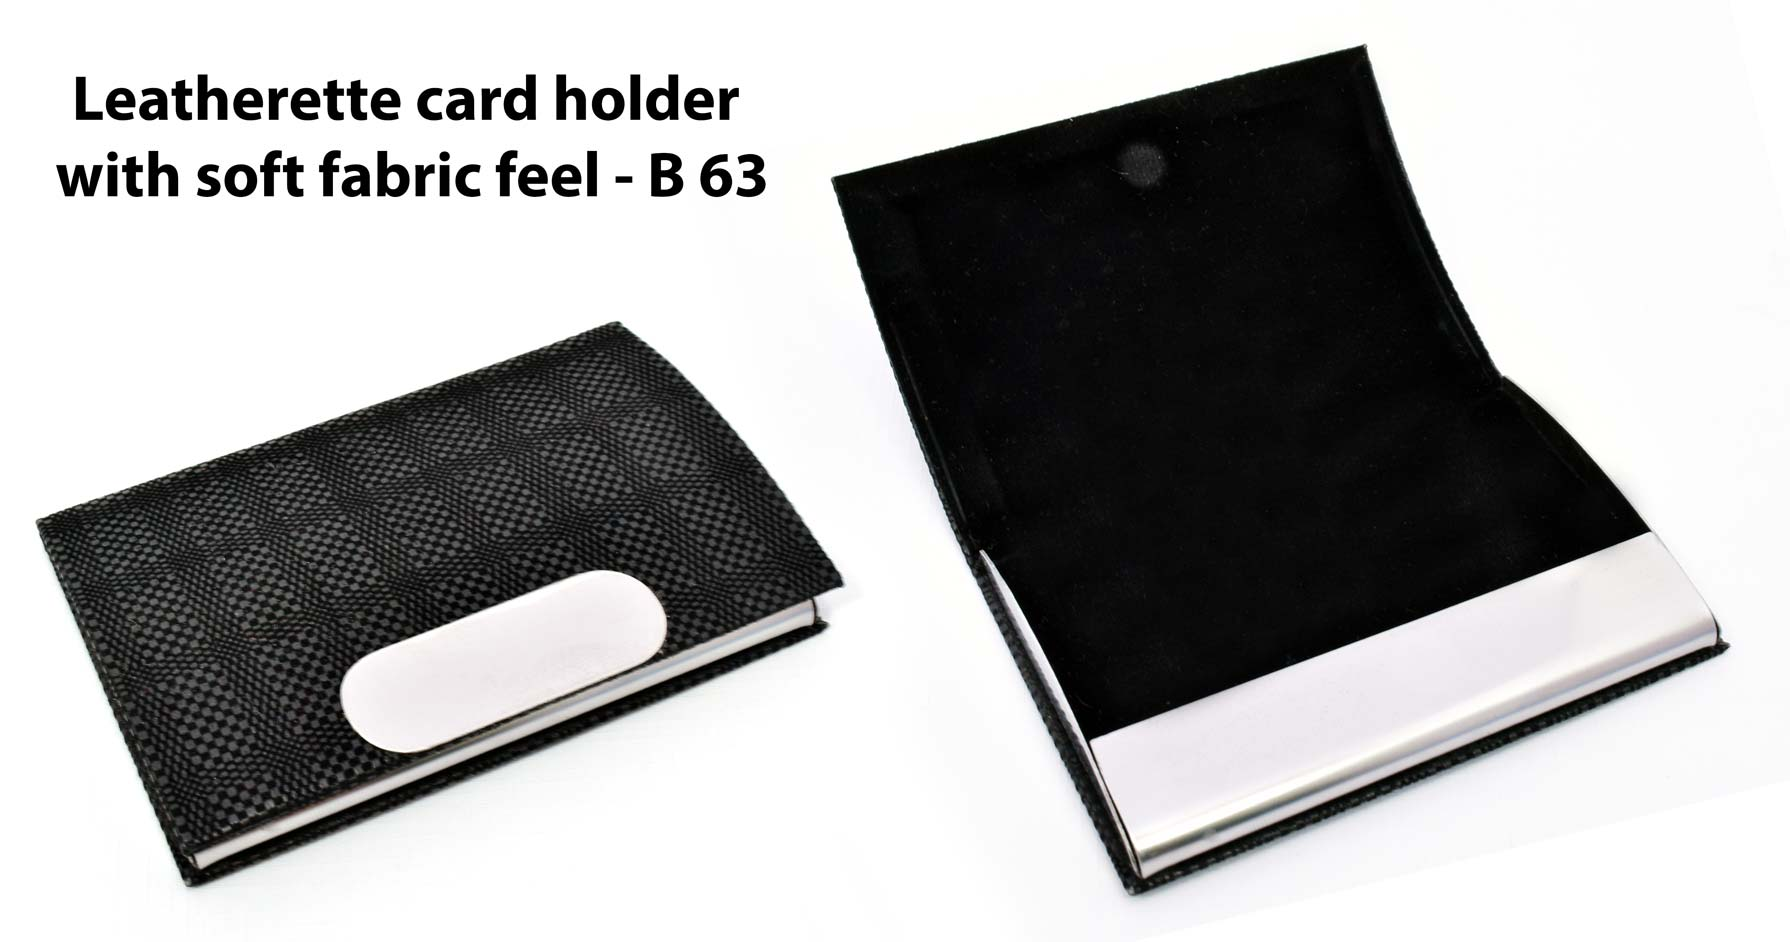 B63 - Leatherette Card holder with soft fabric feel